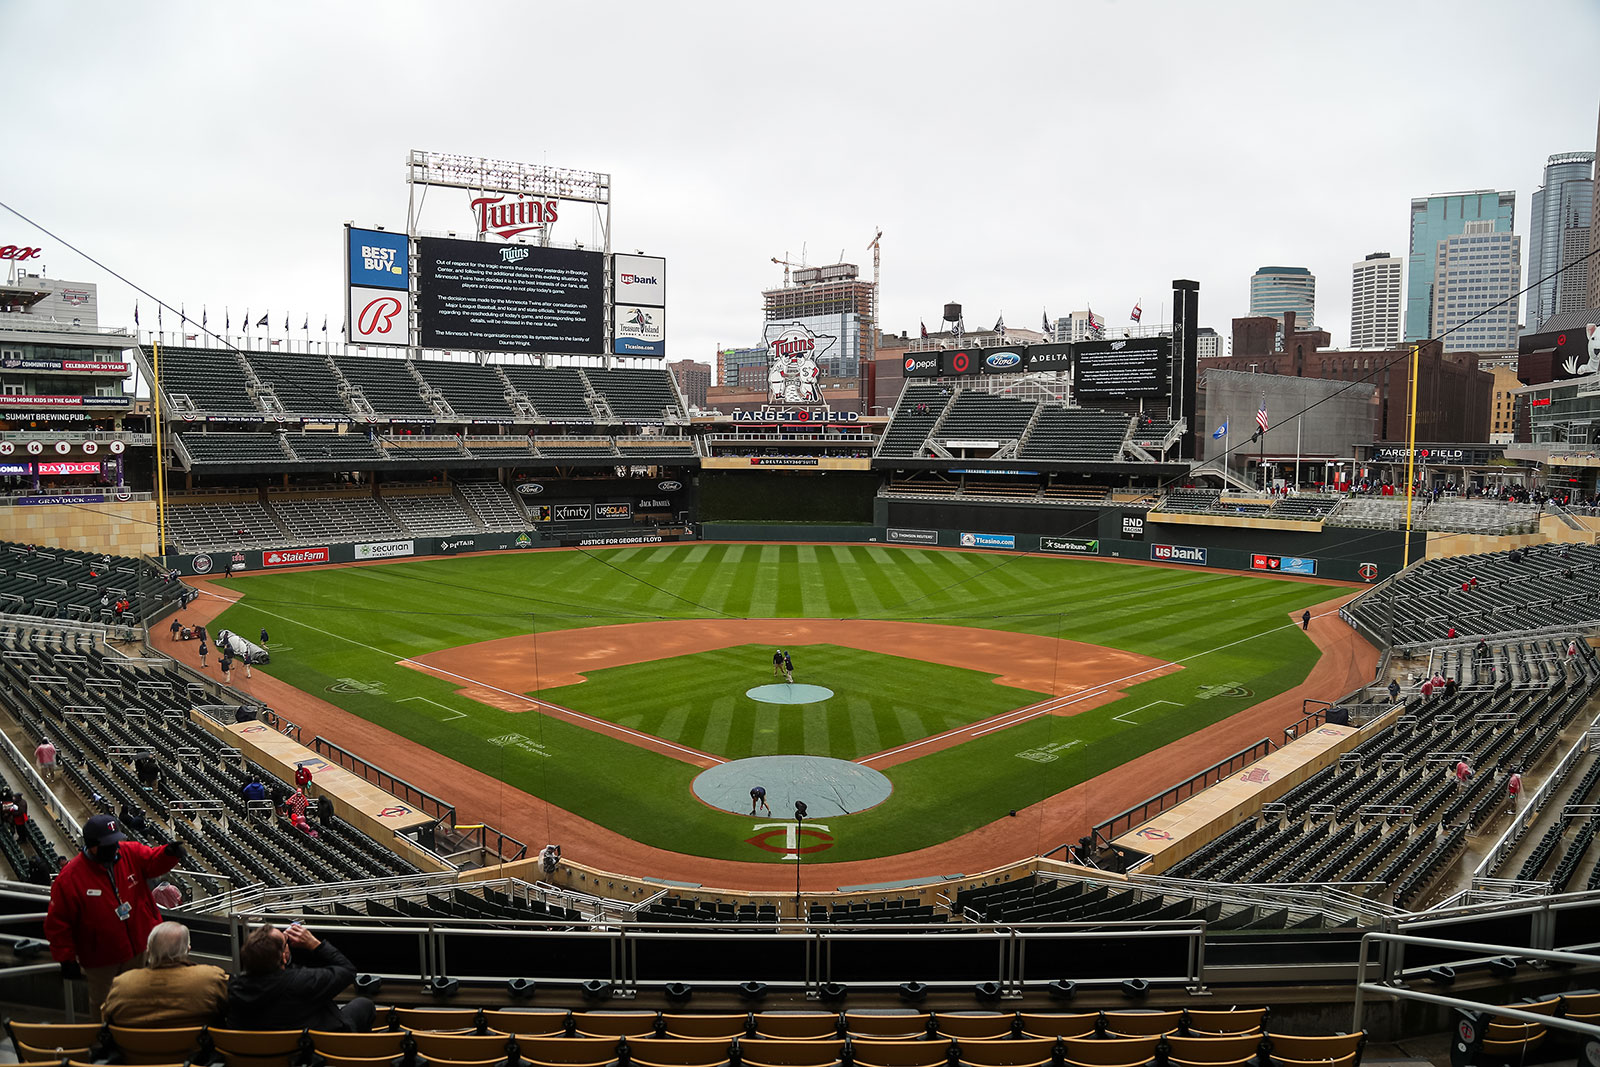 A view of Target Field in Minneapolis following the postponement of Monday's game between the Minnesota Twins and Boston Red Sox.